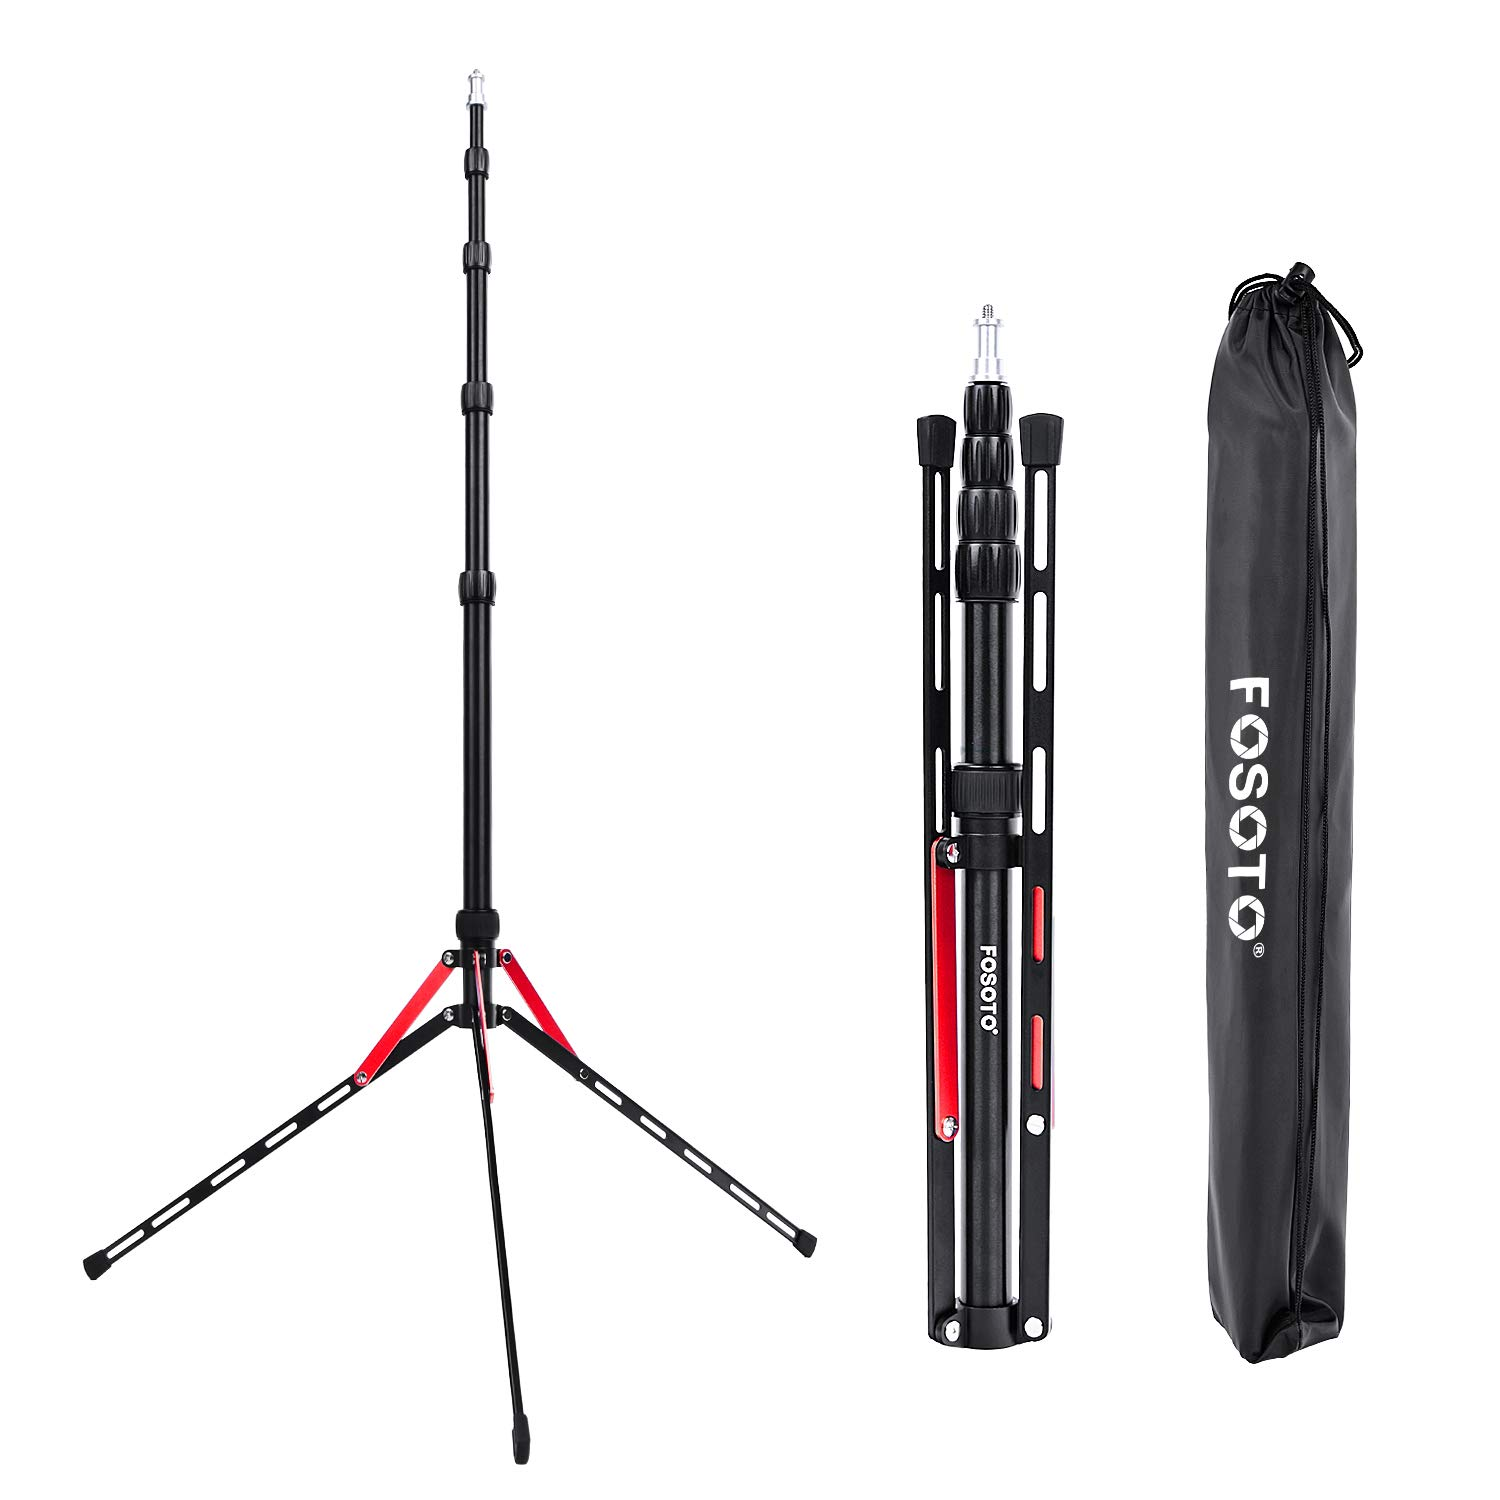 FOSOTO 7.2ft Aluminum Alloy Compact Portable Reverse Legs Light Stand with Carry Bag for Photography Video Photo Studios Photographic Equipment by FOSOTO